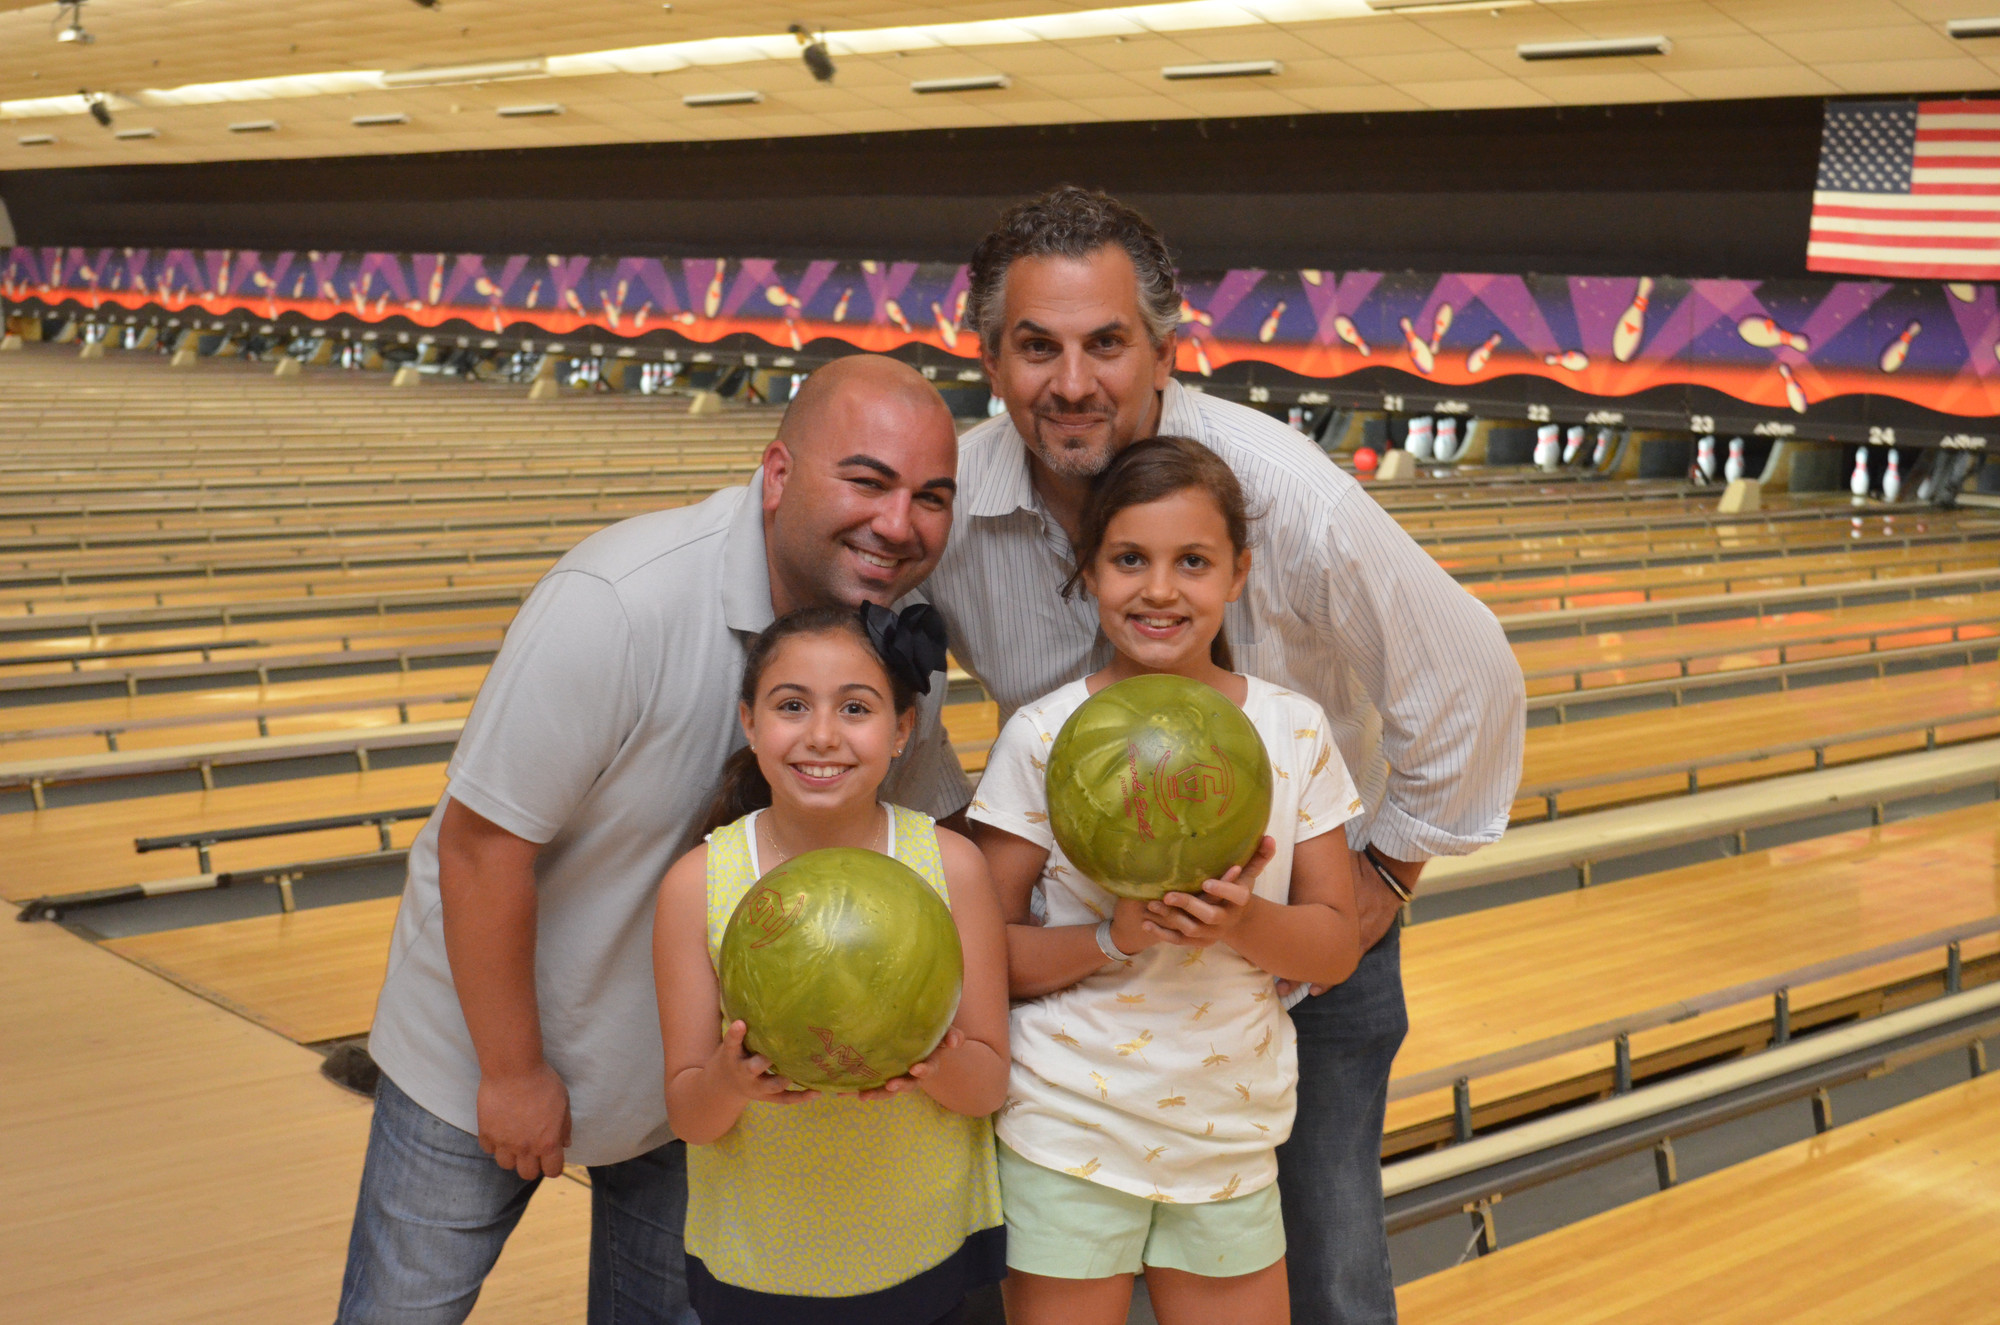 Left, Mike Gentile and his daughter Giustina 11 and Right, Mike Martino with his daughter Julia 10.